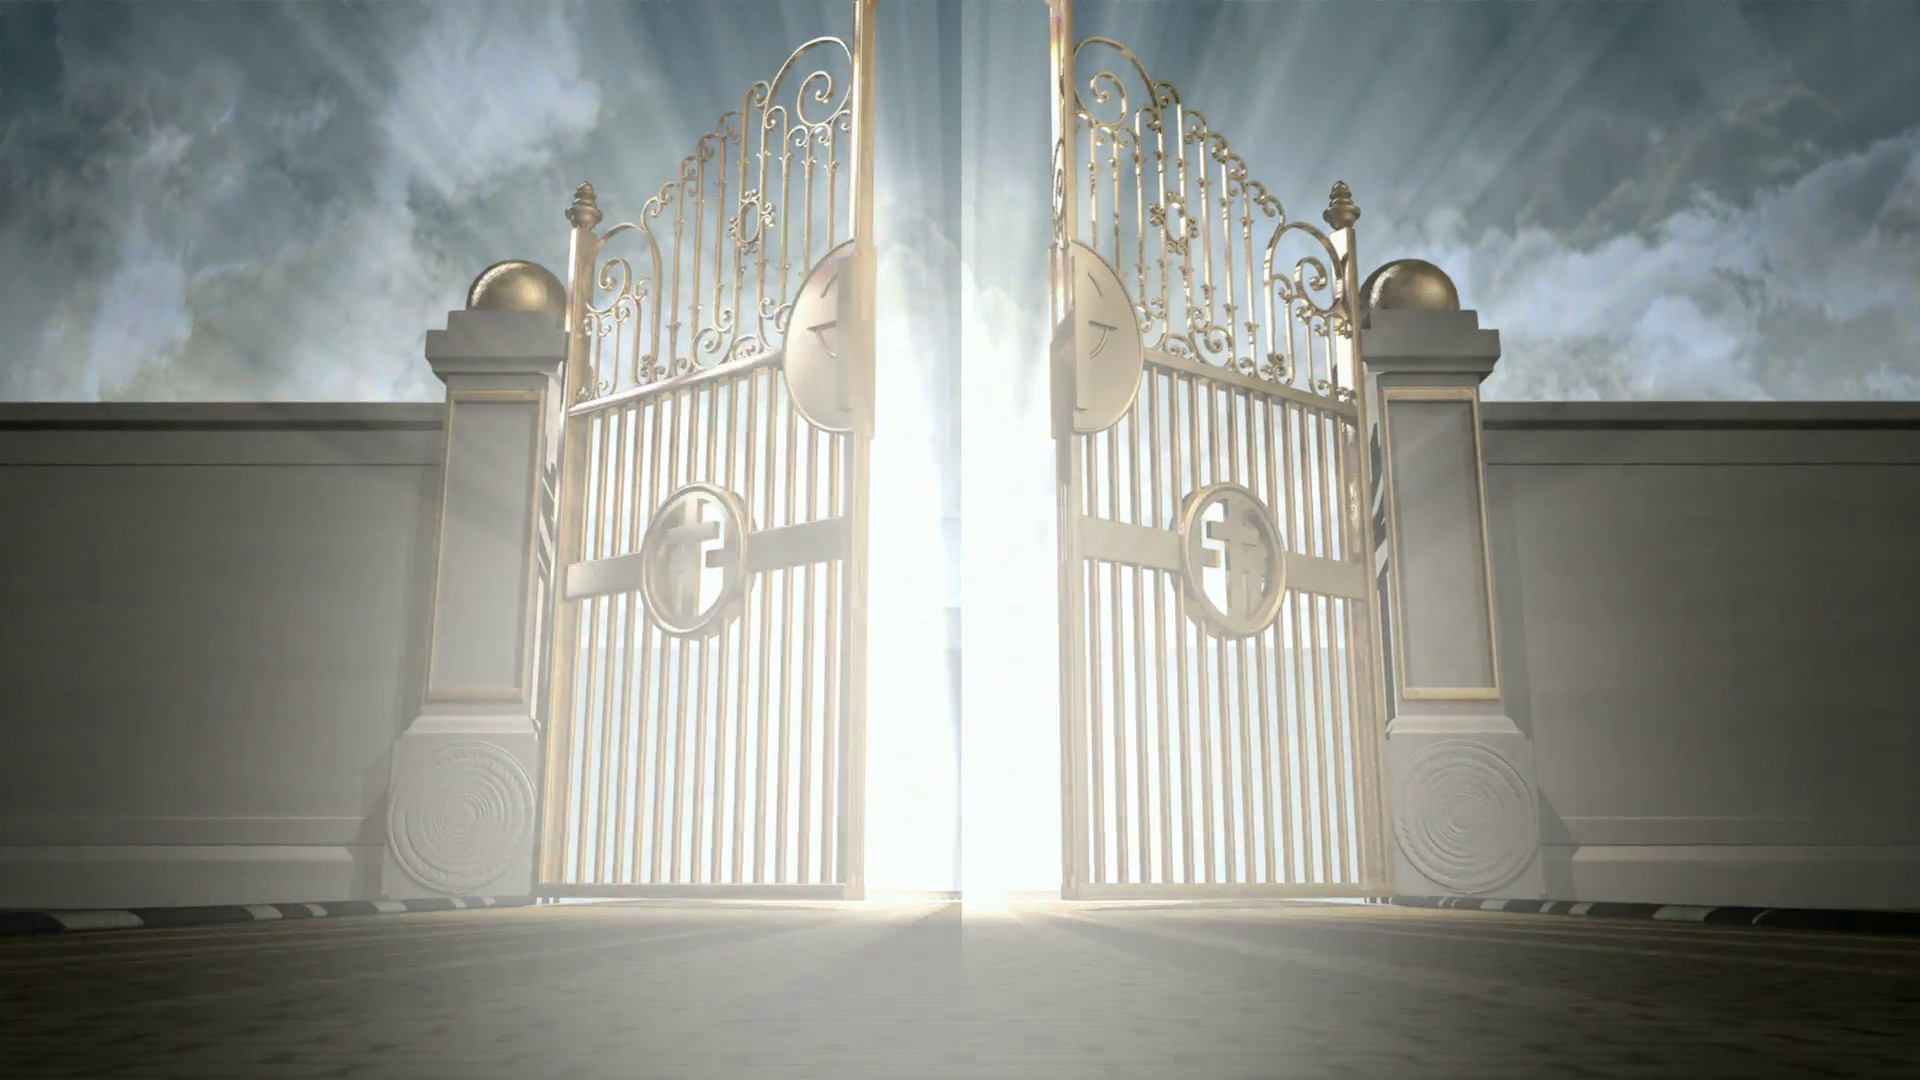 heaven gate wallpaper - photo #10